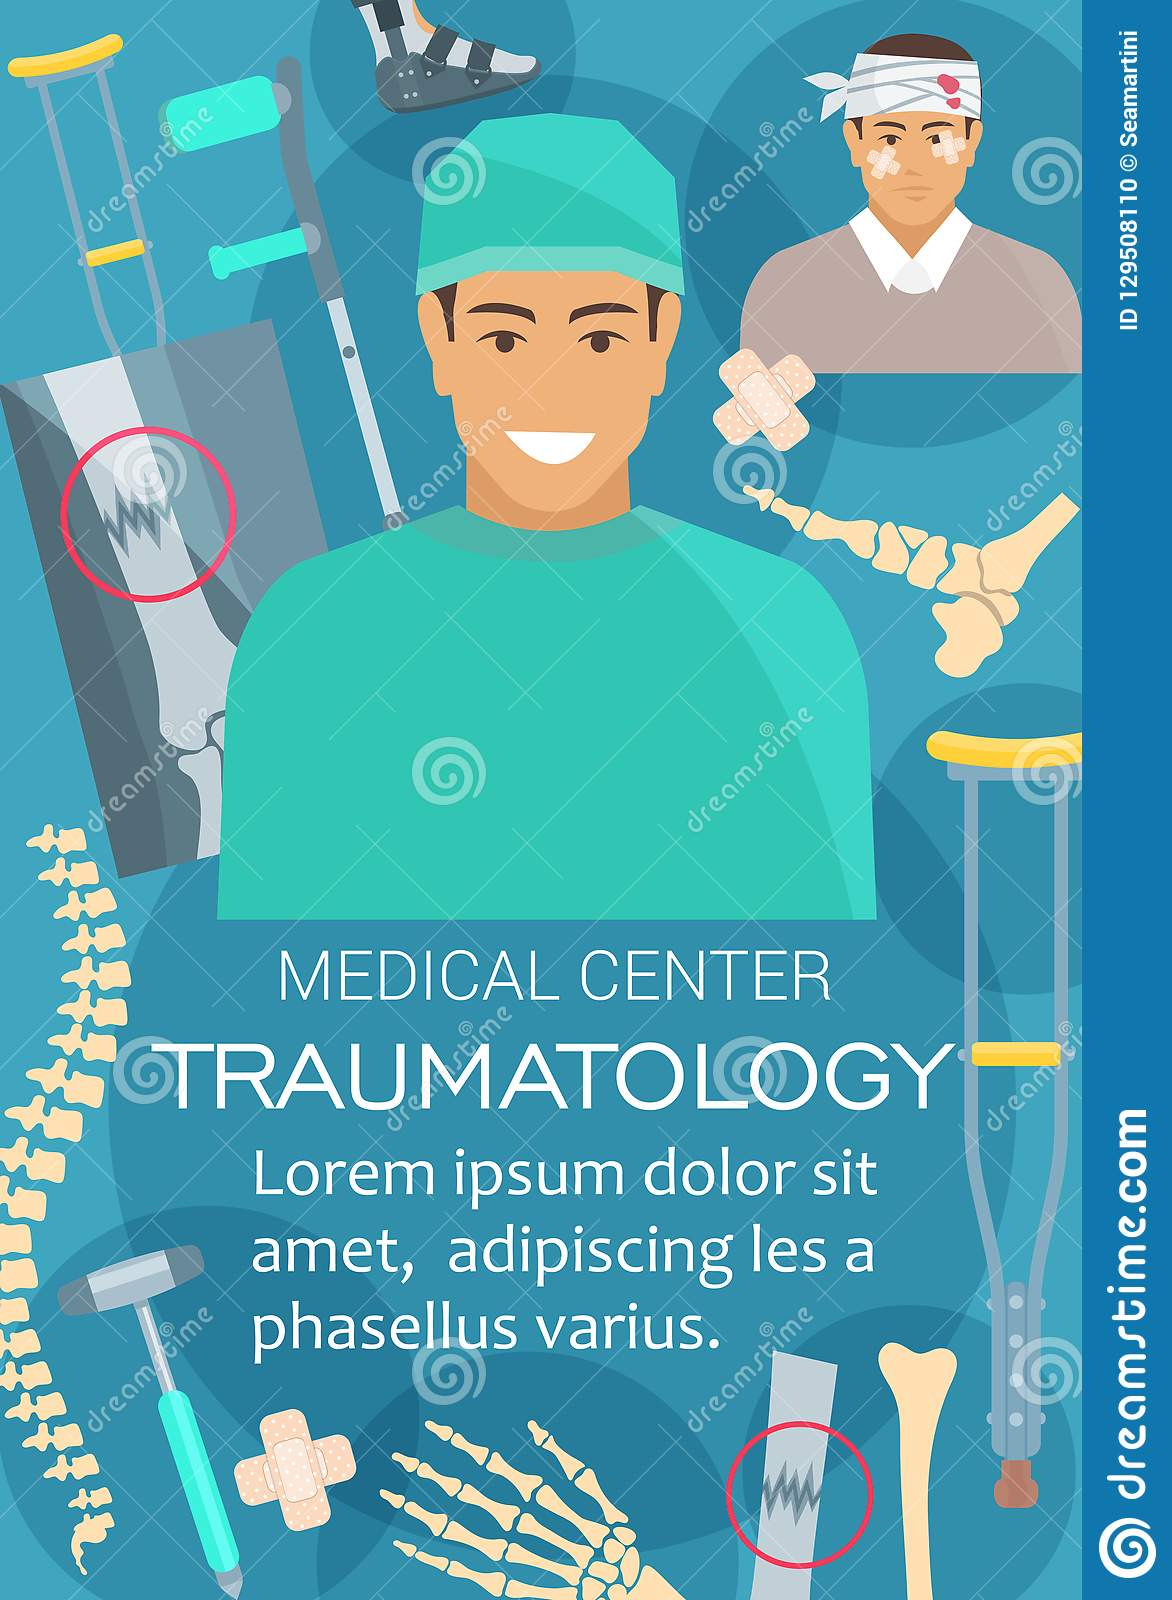 Trauma Room Design: Traumatology Medical Clinic And Doctor, Vector Stock